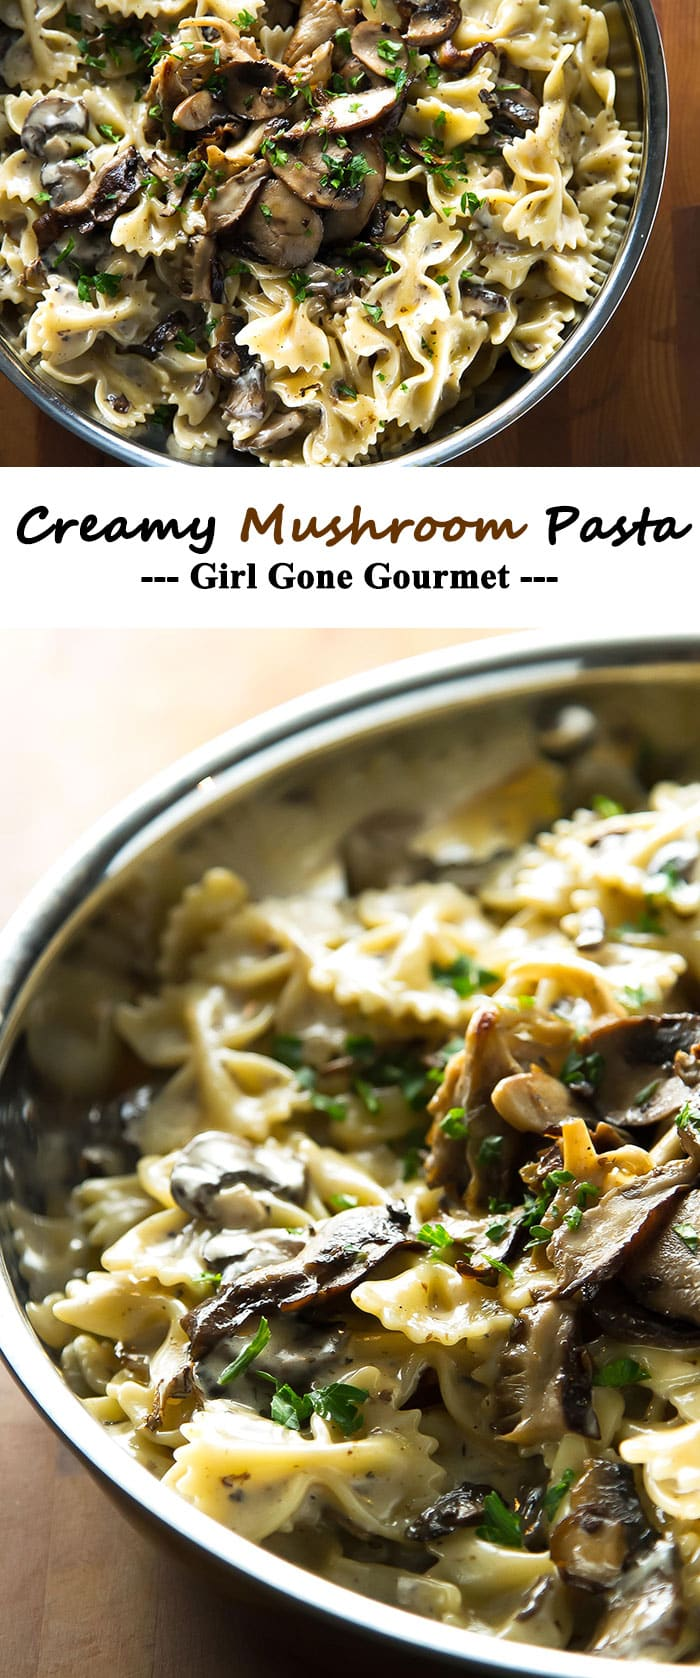 This creamy mushroom pasta takes only 30 minutes to make! | girlgonegourmet.com